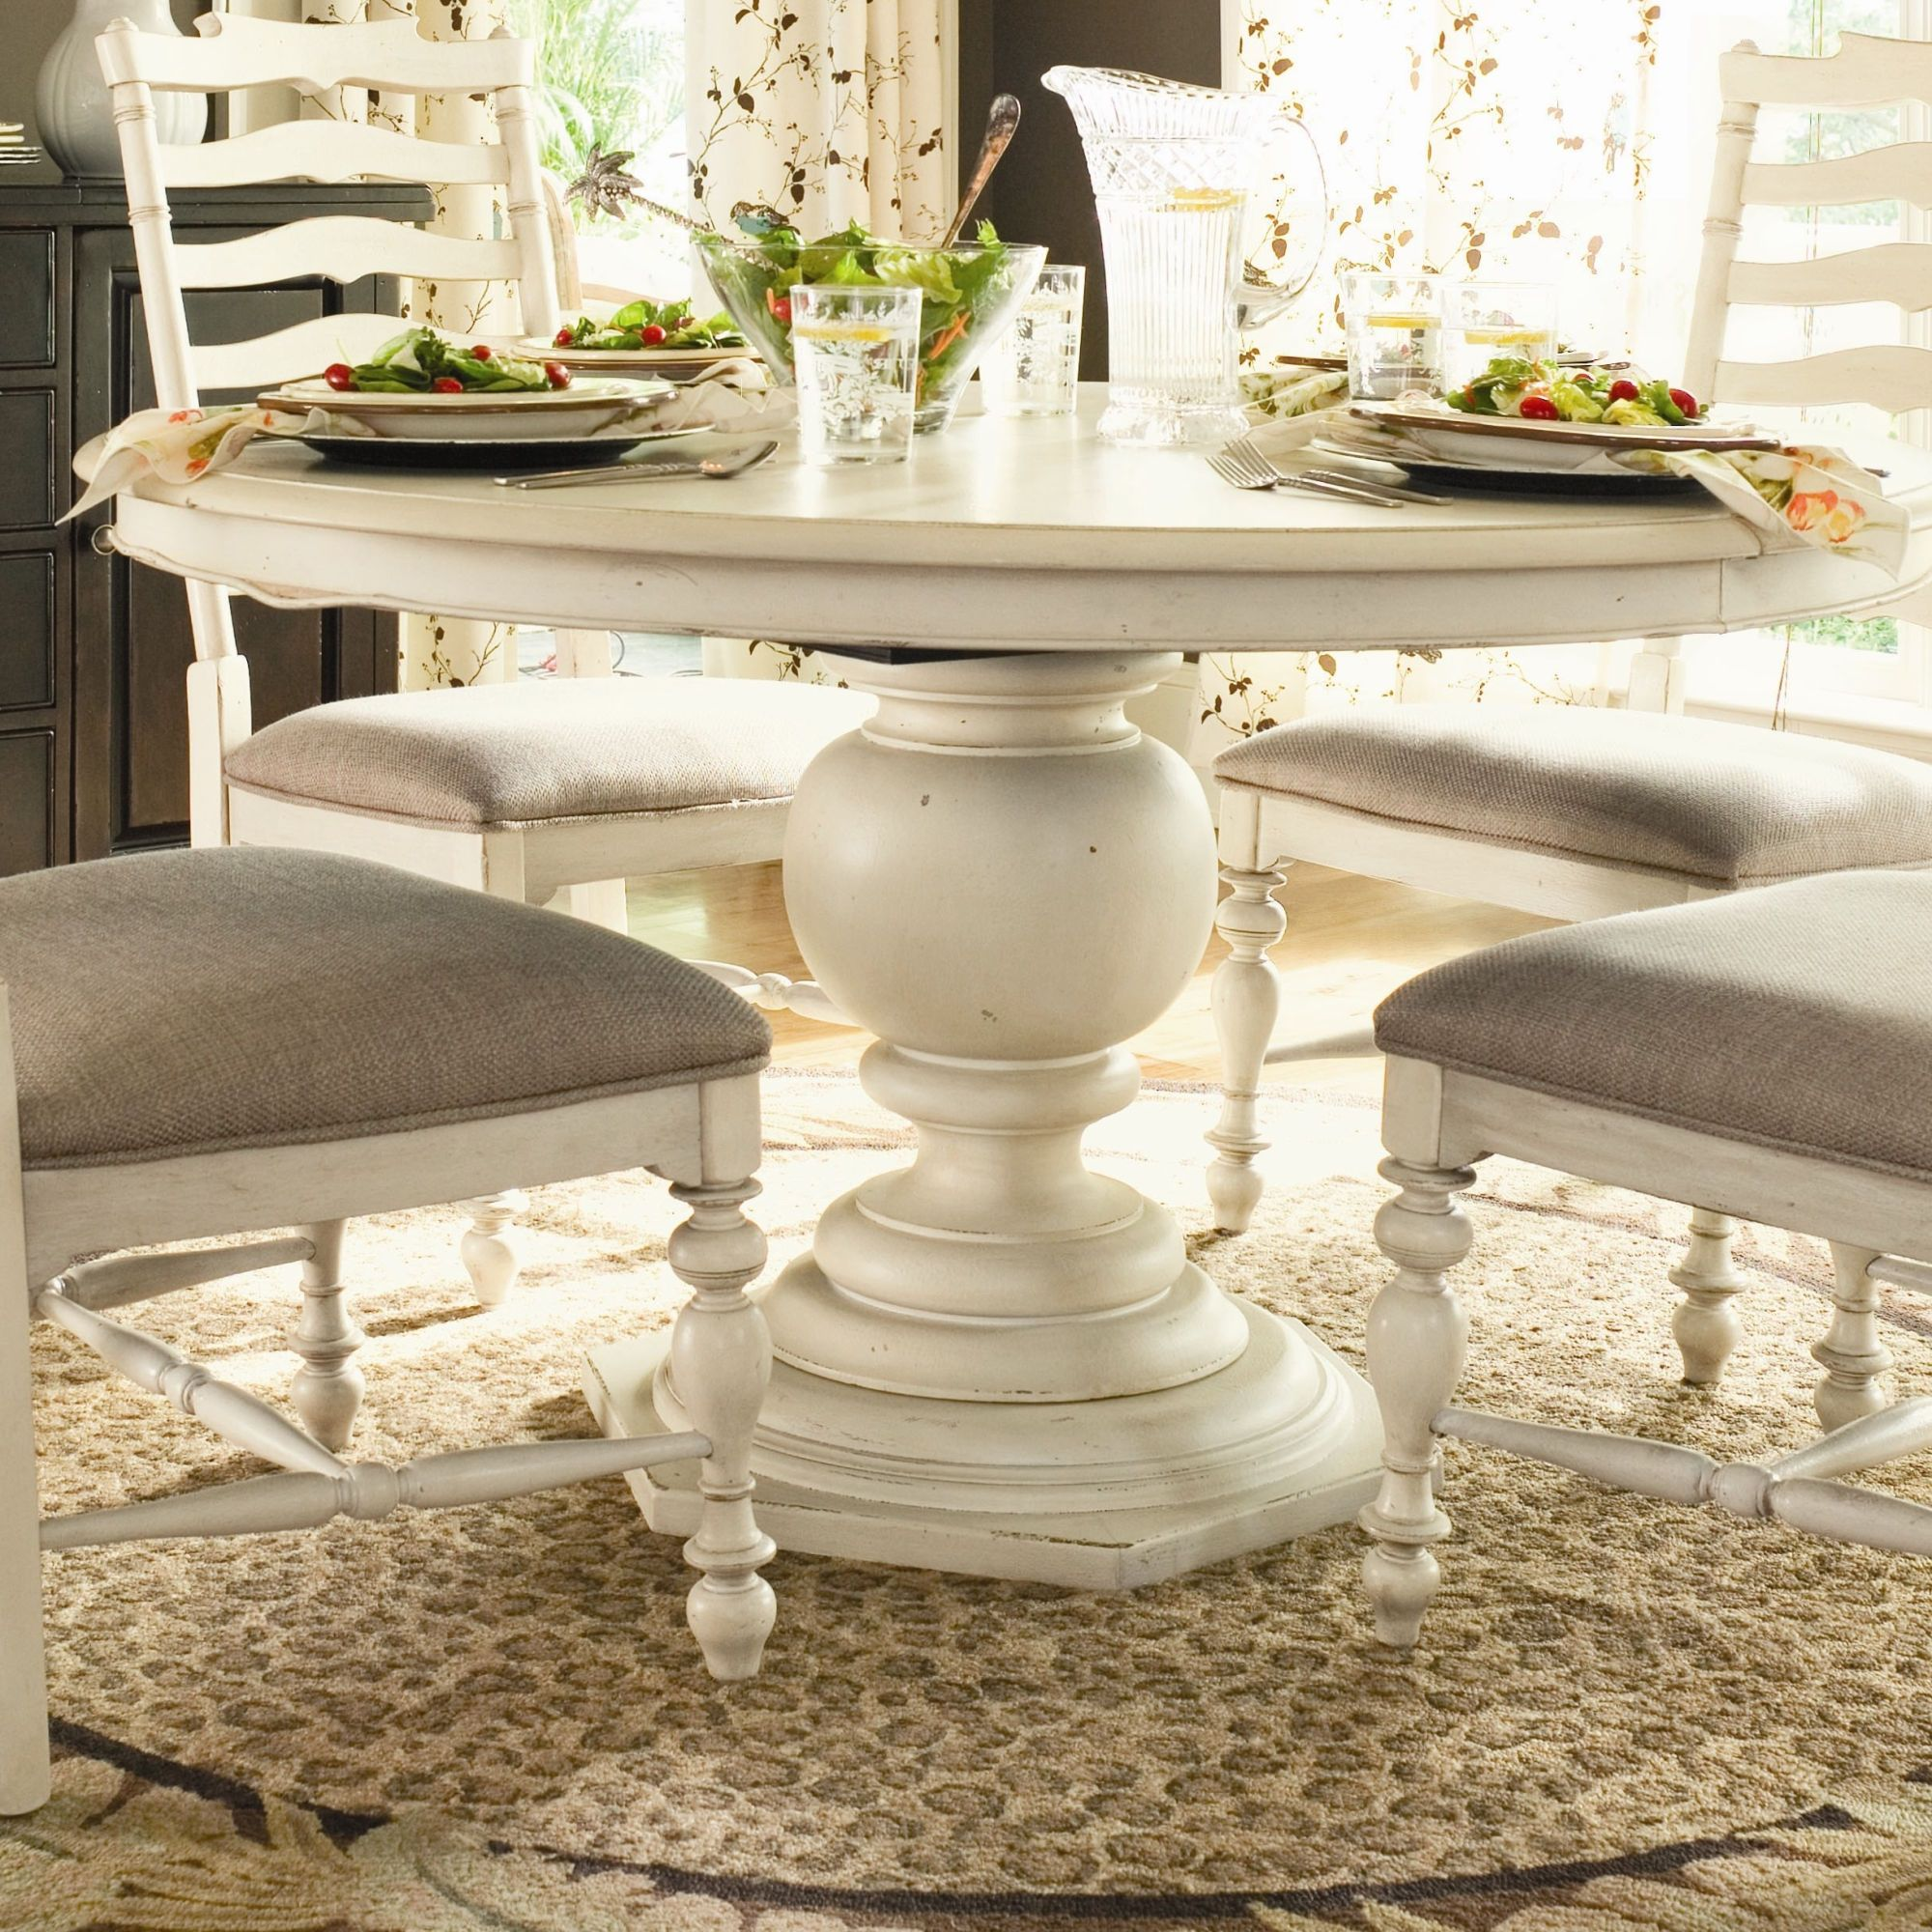 Badgett Extendable Dining Table Round Pedestal Dining Table